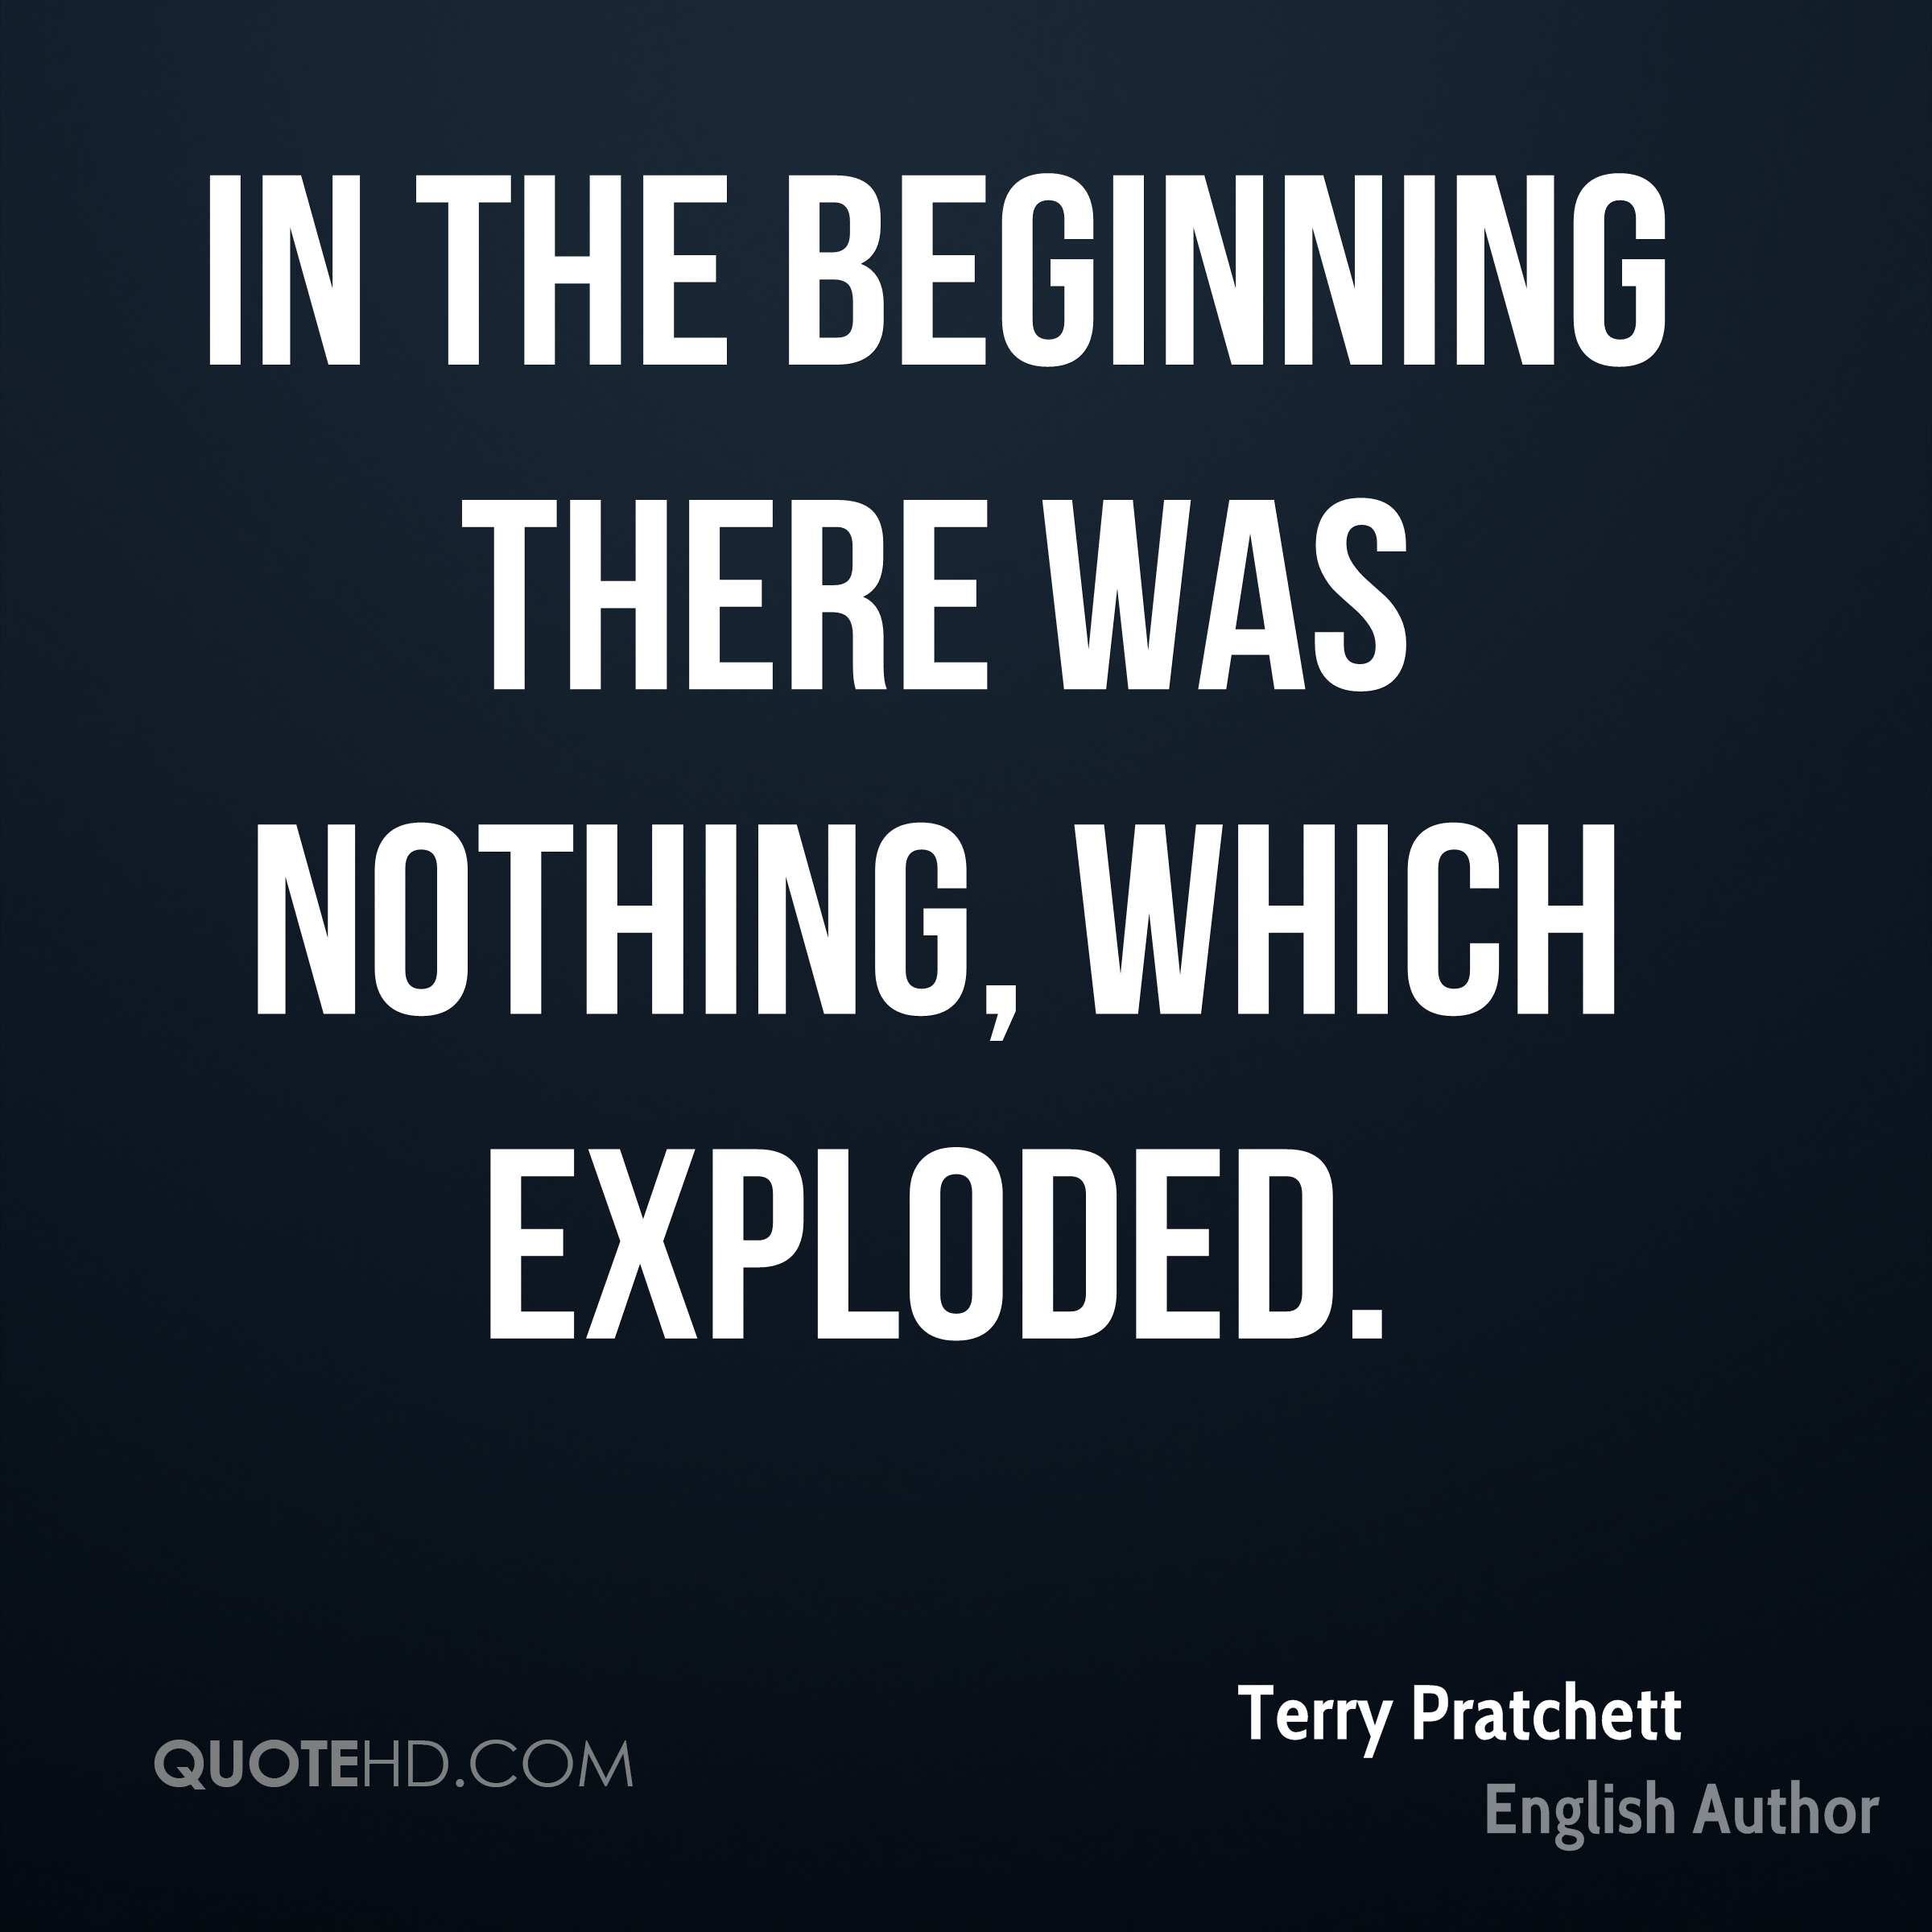 In the beginning there was nothing, which exploded.